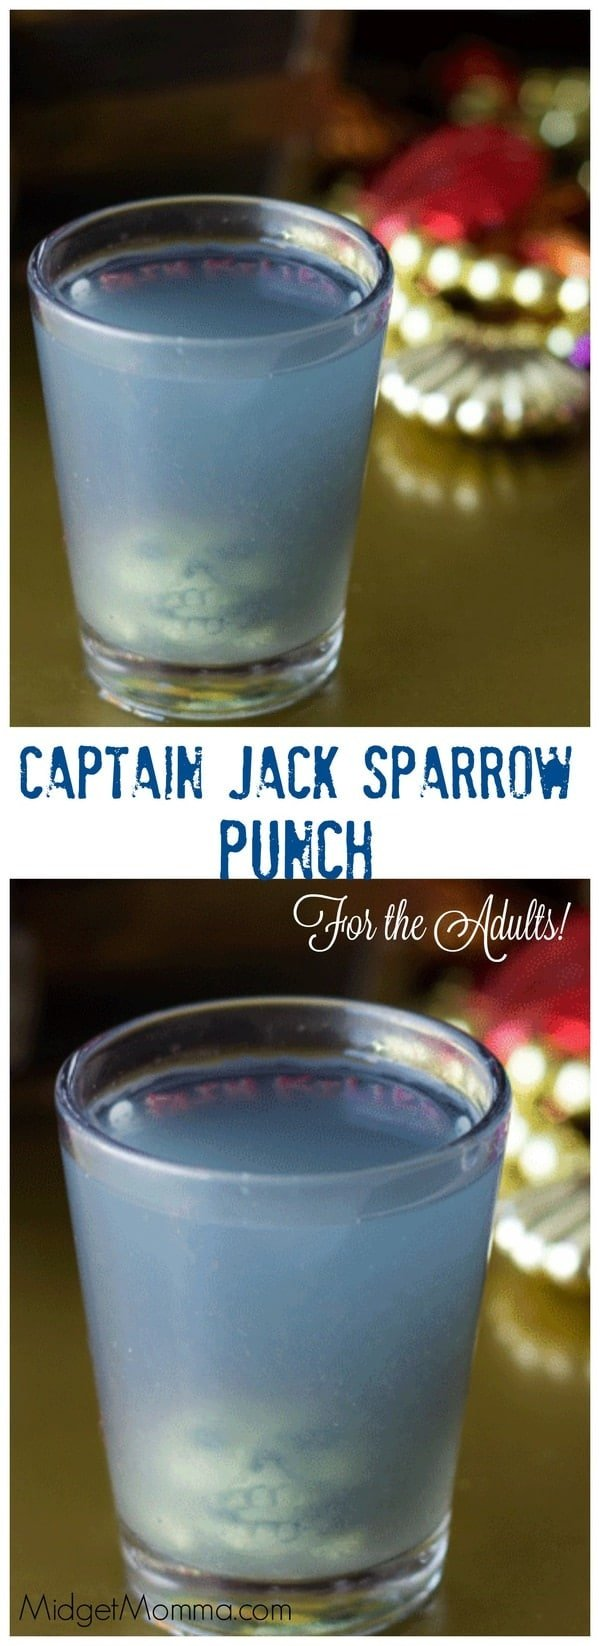 Captain Jack Sparrow Alcoholic Punch For Adults Midgetmomma